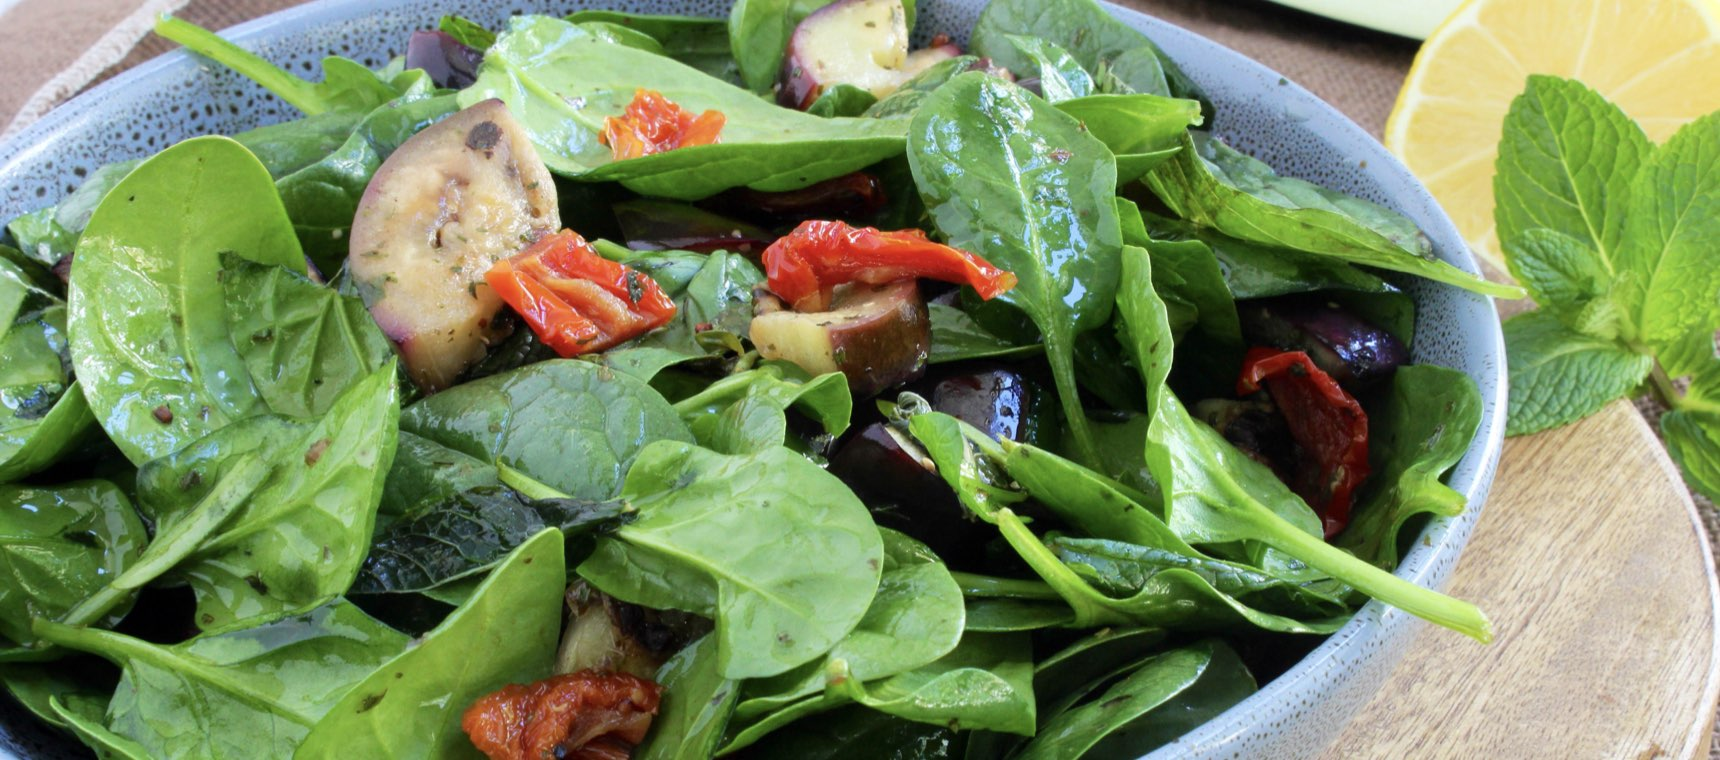 Grilled Eggplant and Spinach Salad